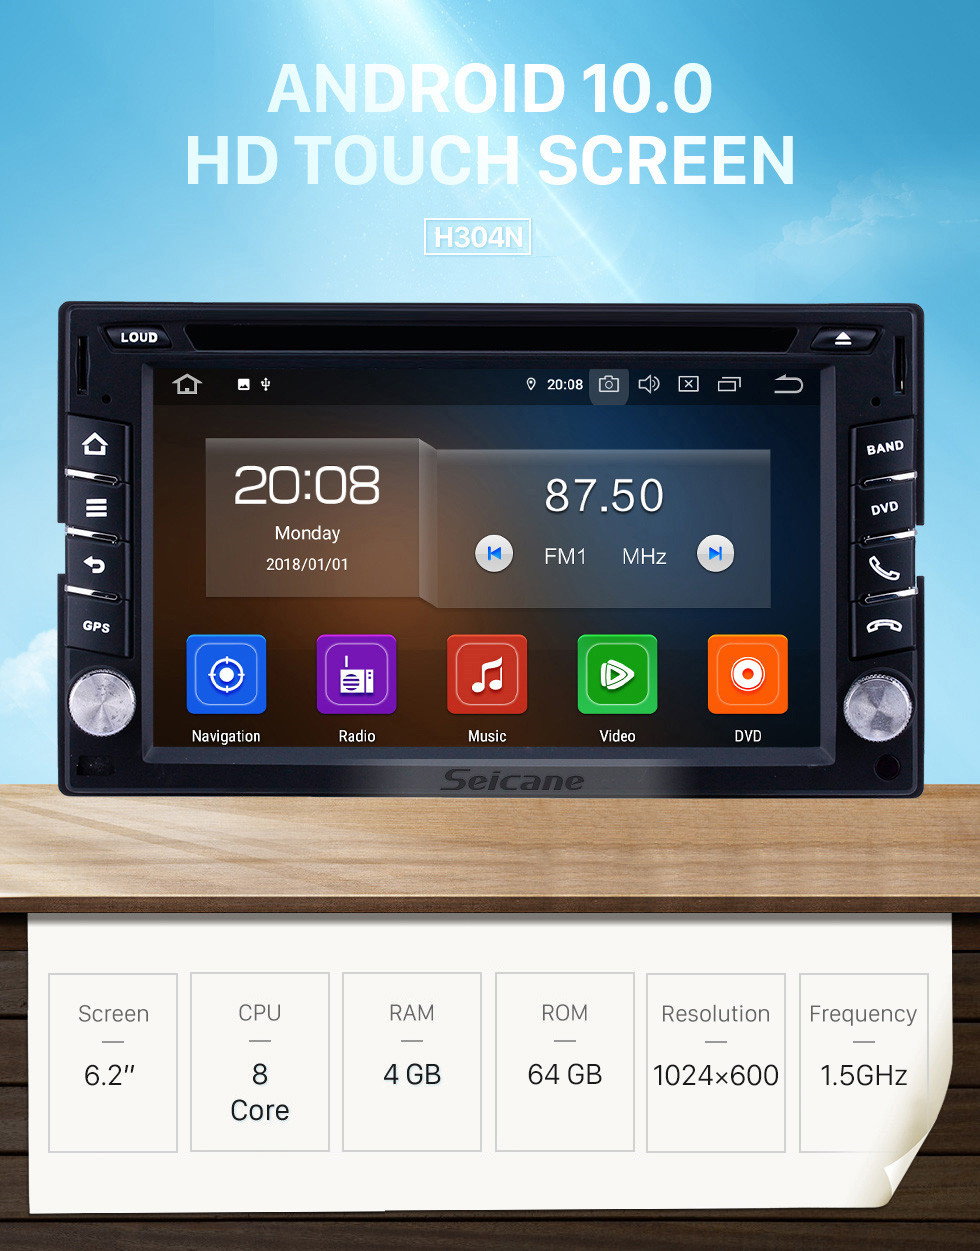 Seicane 6.2 inch Android 10.0 Universal Radio Bluetooth AUX HD Touchscreen WIFI GPS Navigation Carplay USB support TPMS DVR